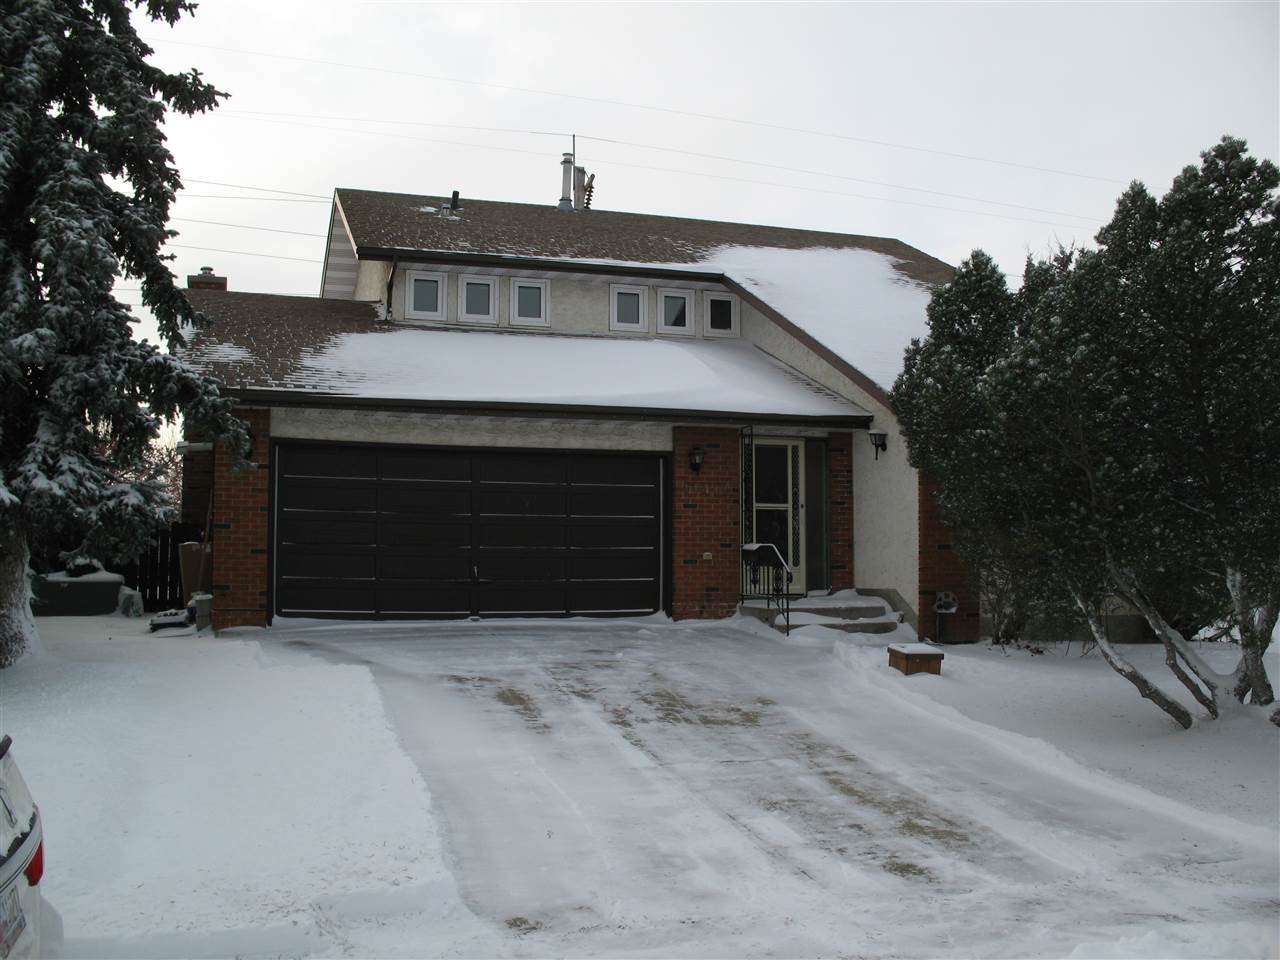 UPGRADED One of a kind character home BACKING ONTO GREENSPACE! New gourmet kitchen with GRANITE countertops and top of the line stainless steel appliances. The kitchen overlooks the formal dining room, breakfast nook and family room with stone gas fireplace. Patio doors lead you to the deck and PRIVATE LARGE south facing fenced yard. Upstairs features 3 bedrooms, laundry room, and a master suite with HEATED FLOORS and travertine tile  Jacuzzi tub. FULLY FINISHED BASEMENT with den, rec room and full bath with HEATED FLOORS. New flooring throughout, newer shingles, high efficiency furnace, newer hot water tank, and HEATED double attached garage.This home is a must see!